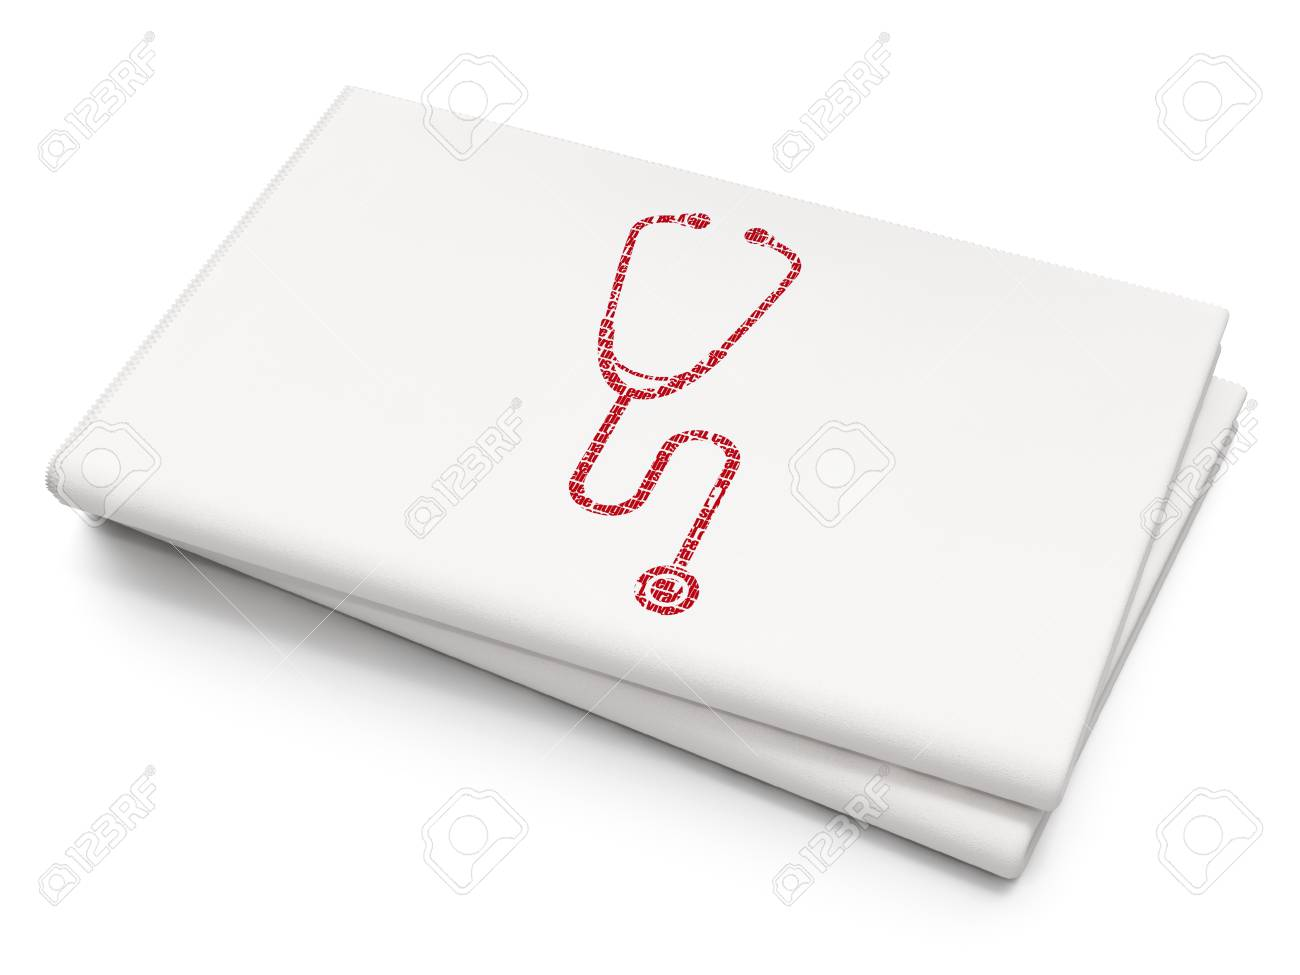 Healthcare Concept Pixelated Red Stethoscope Icon On Blank